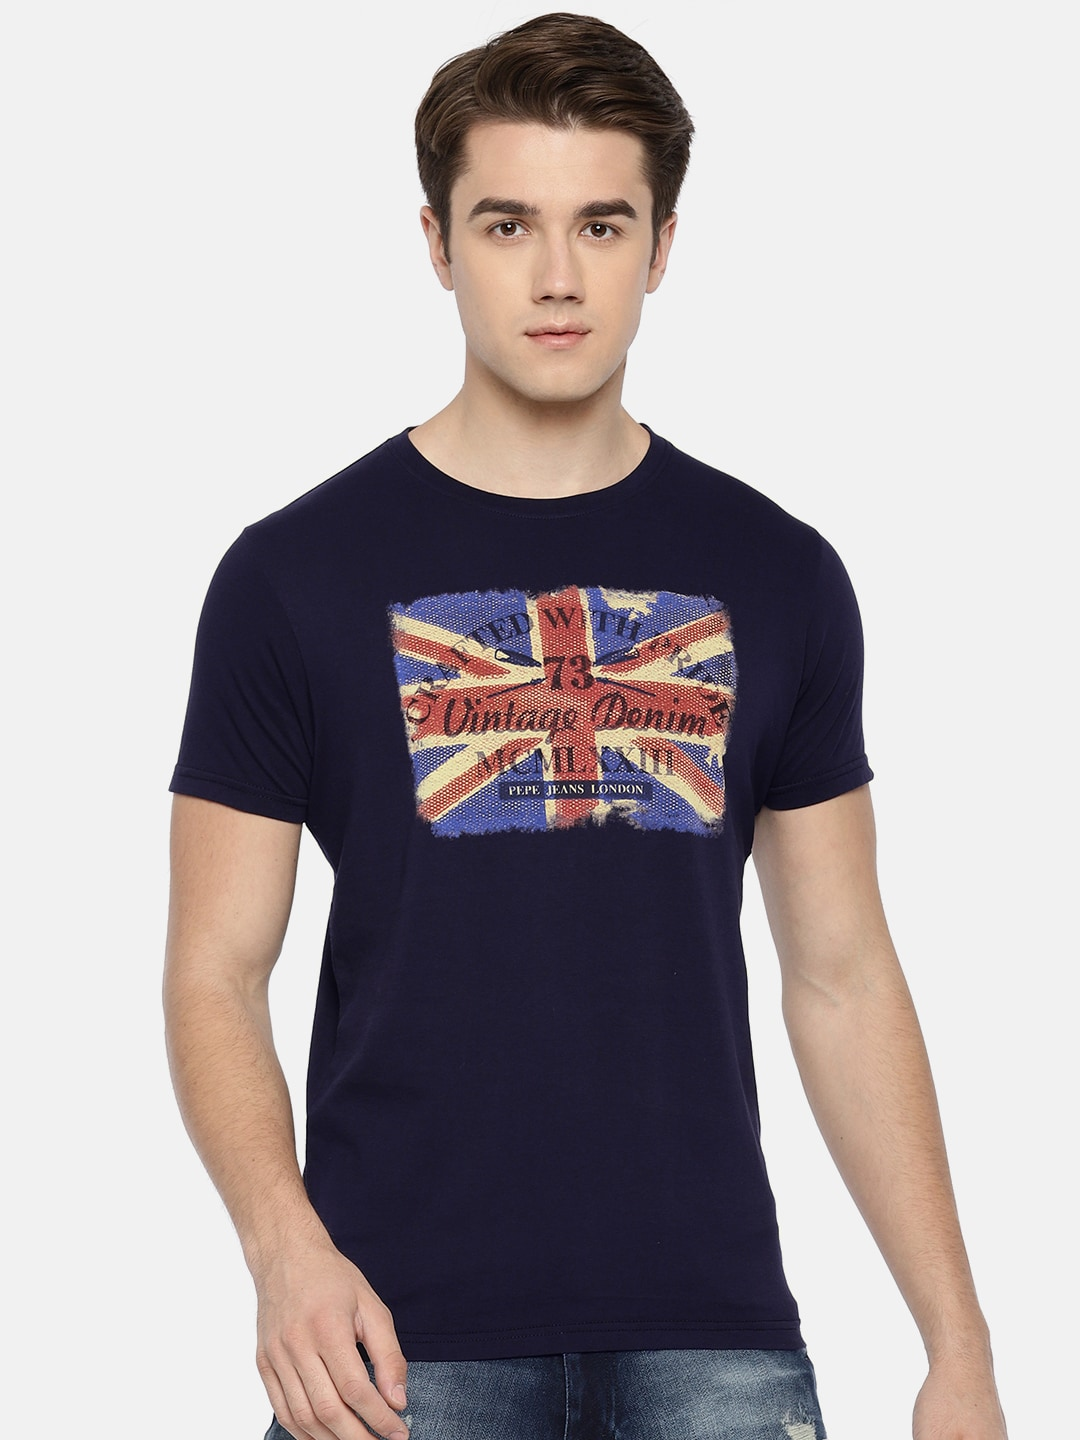 60aedb0f6592 Pepe Jeans Clothing - Buy Pepe Jeans Clothing Online in India